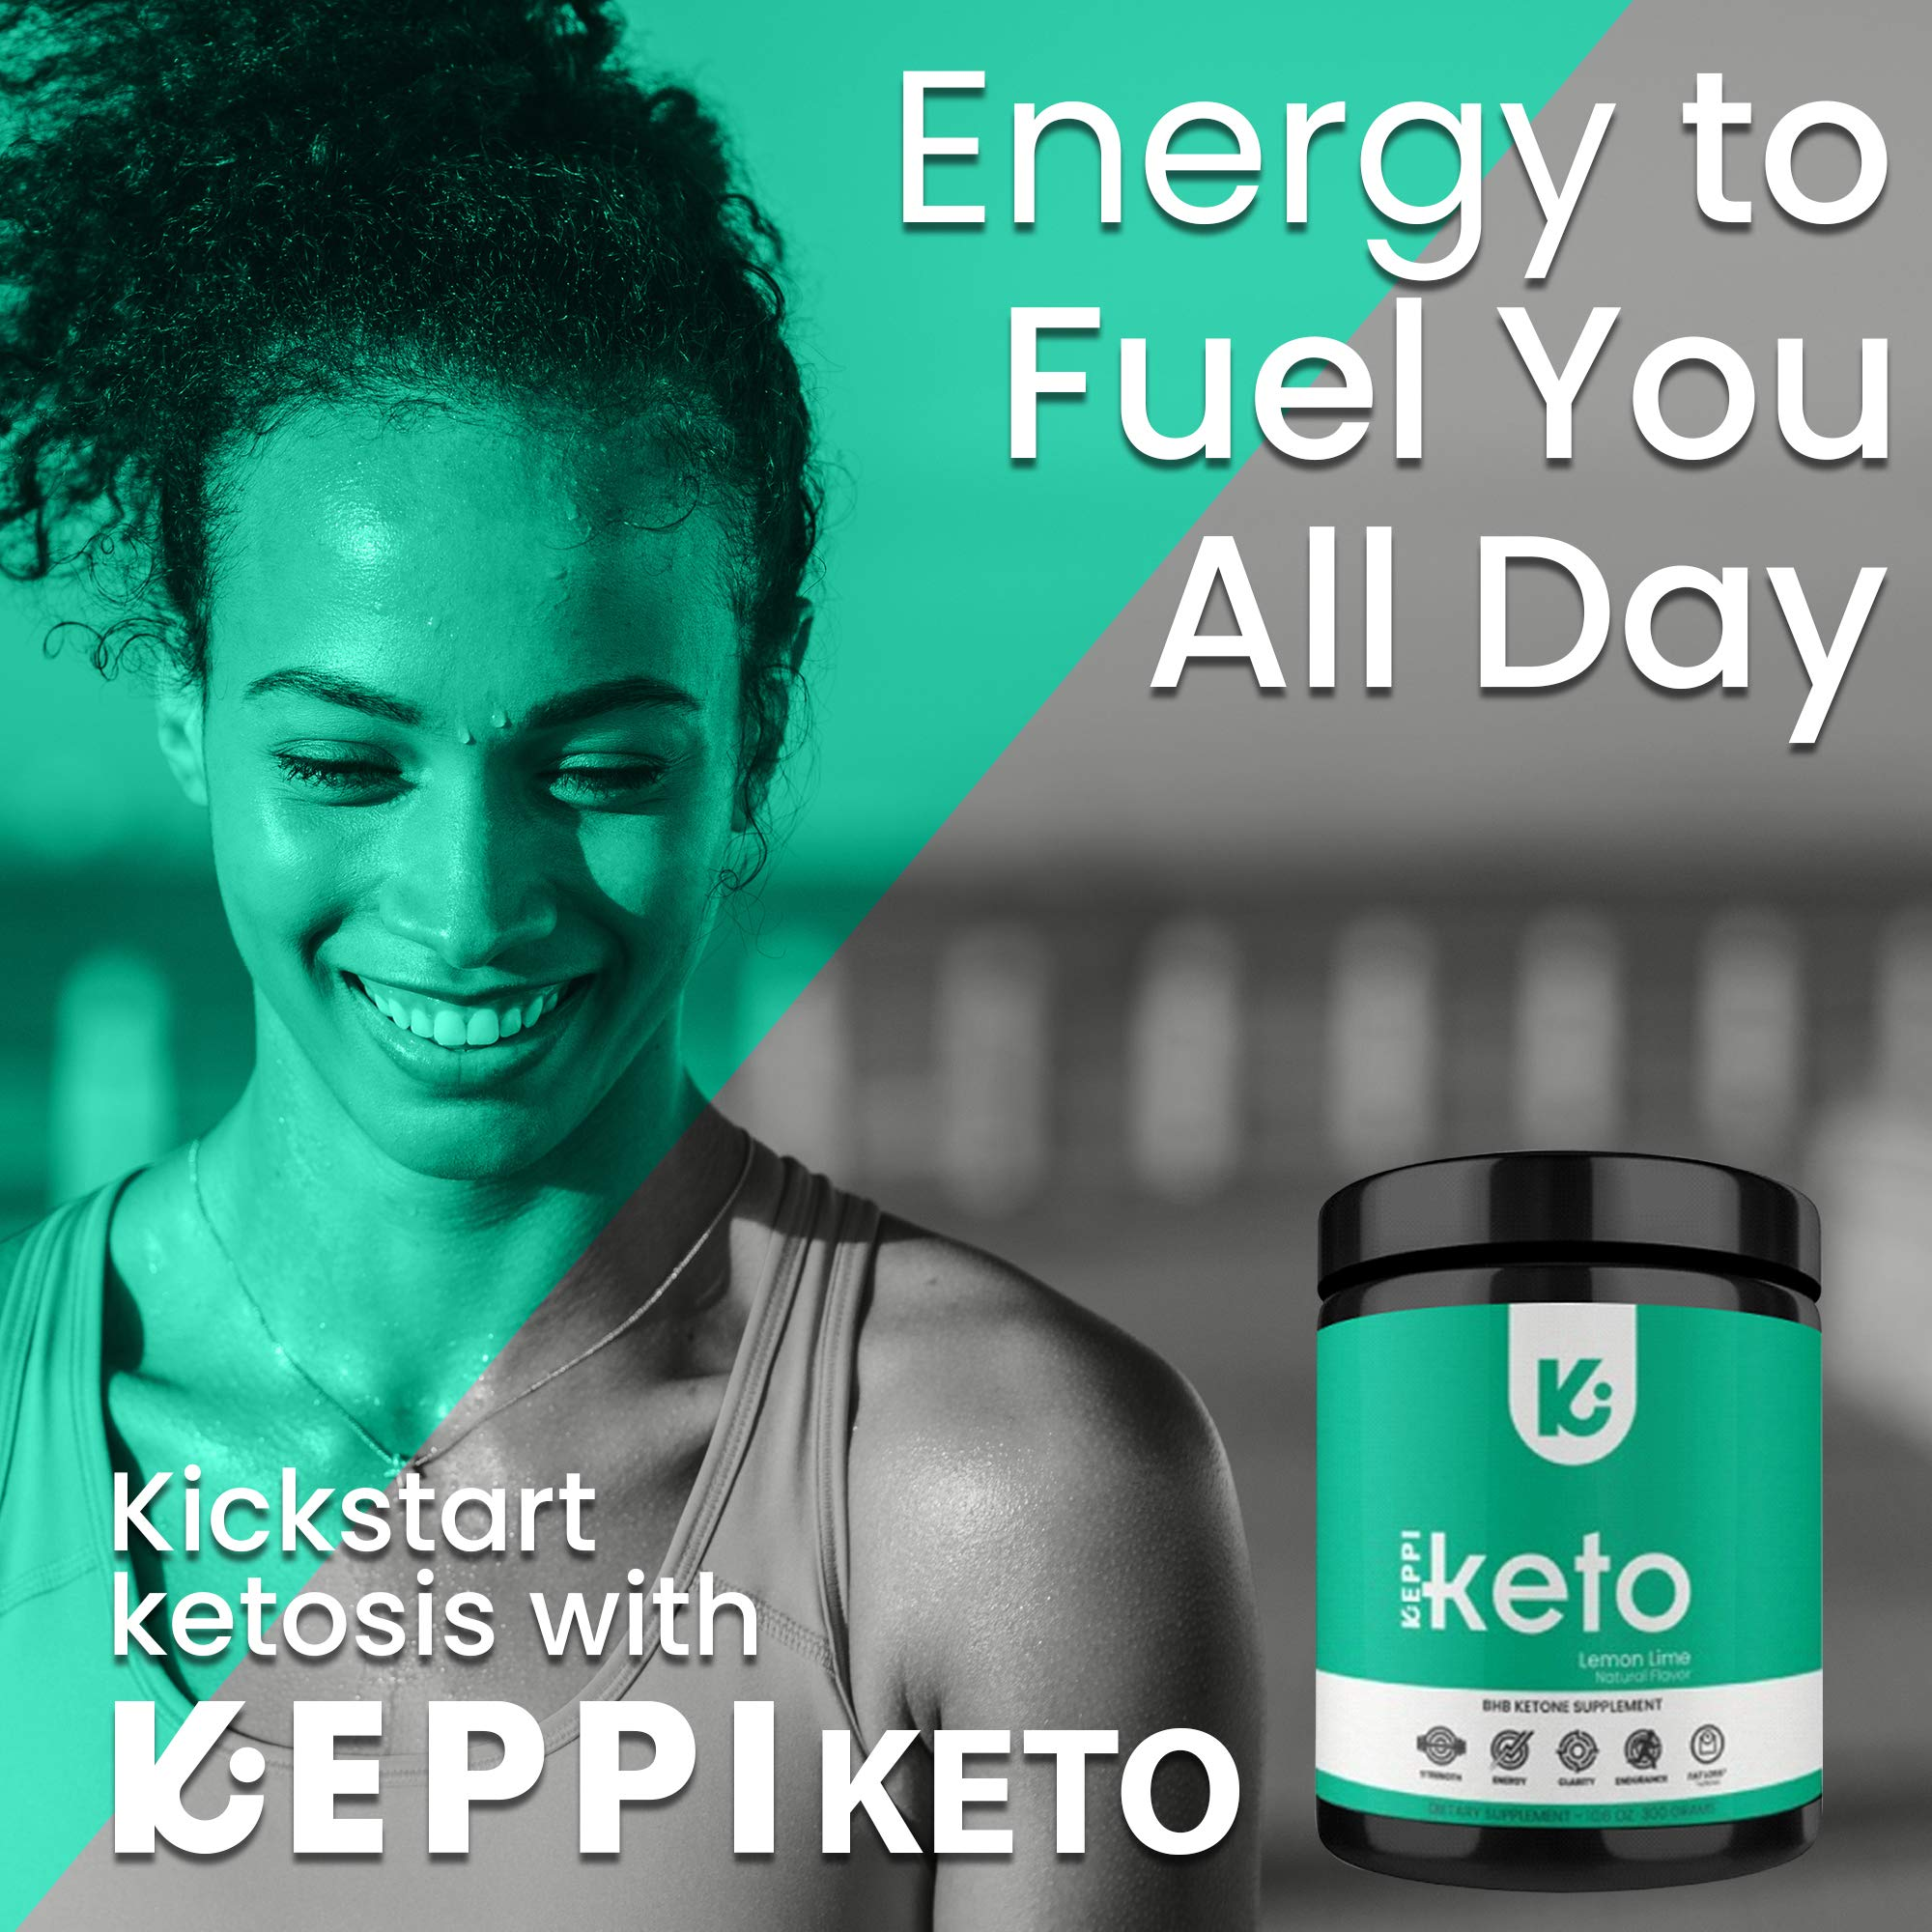 KEPPI Keto Exogenous Ketones Powder Supplement: Patented BHB Salts Formulated to Increase Energy, Burn Fat, Maintain Ketosis and Mental Focus on The Ketogenic Diet by Keppi (Image #4)